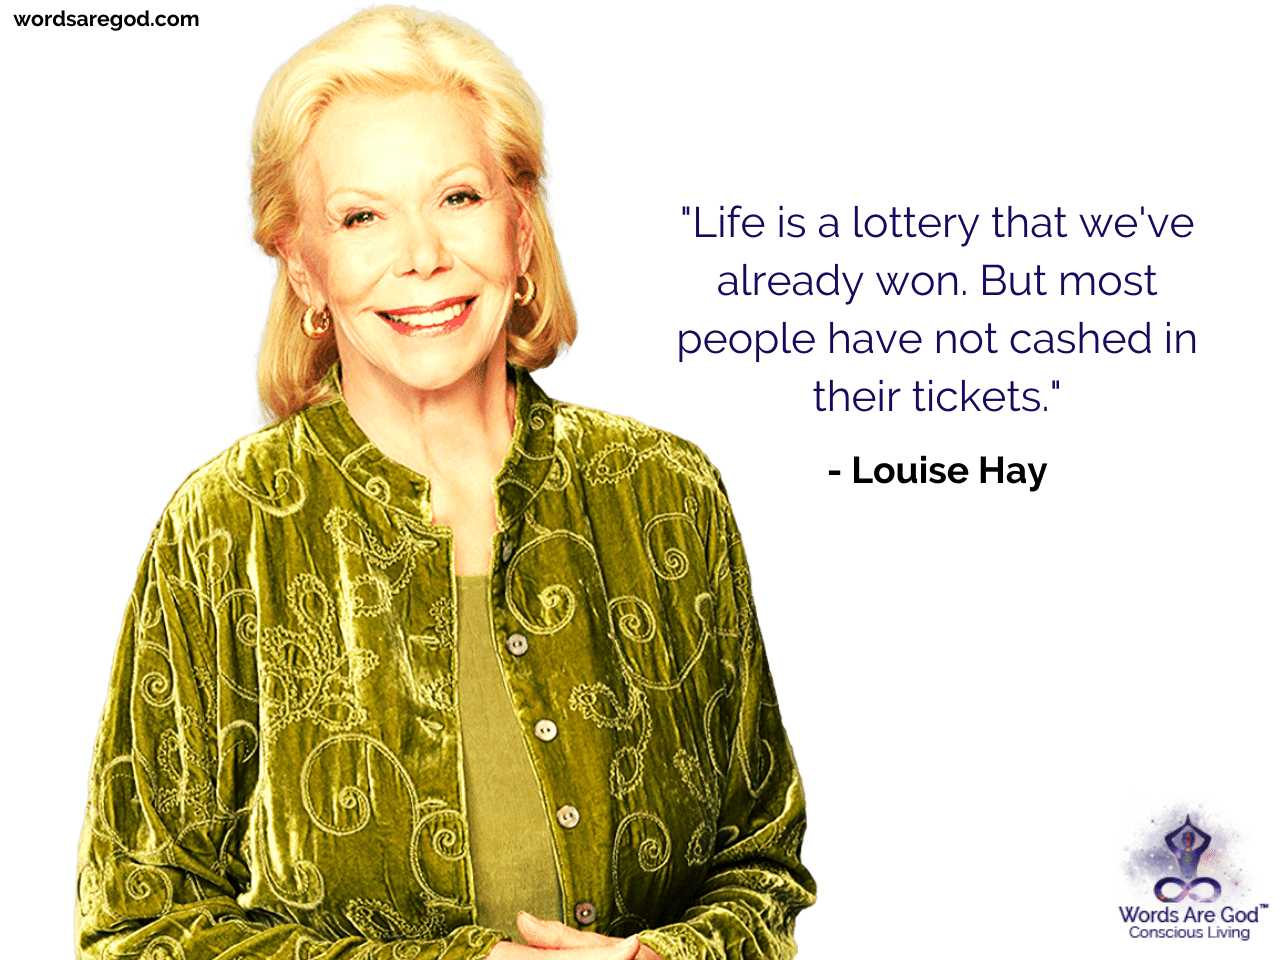 Louise Hay Inspirational Quote